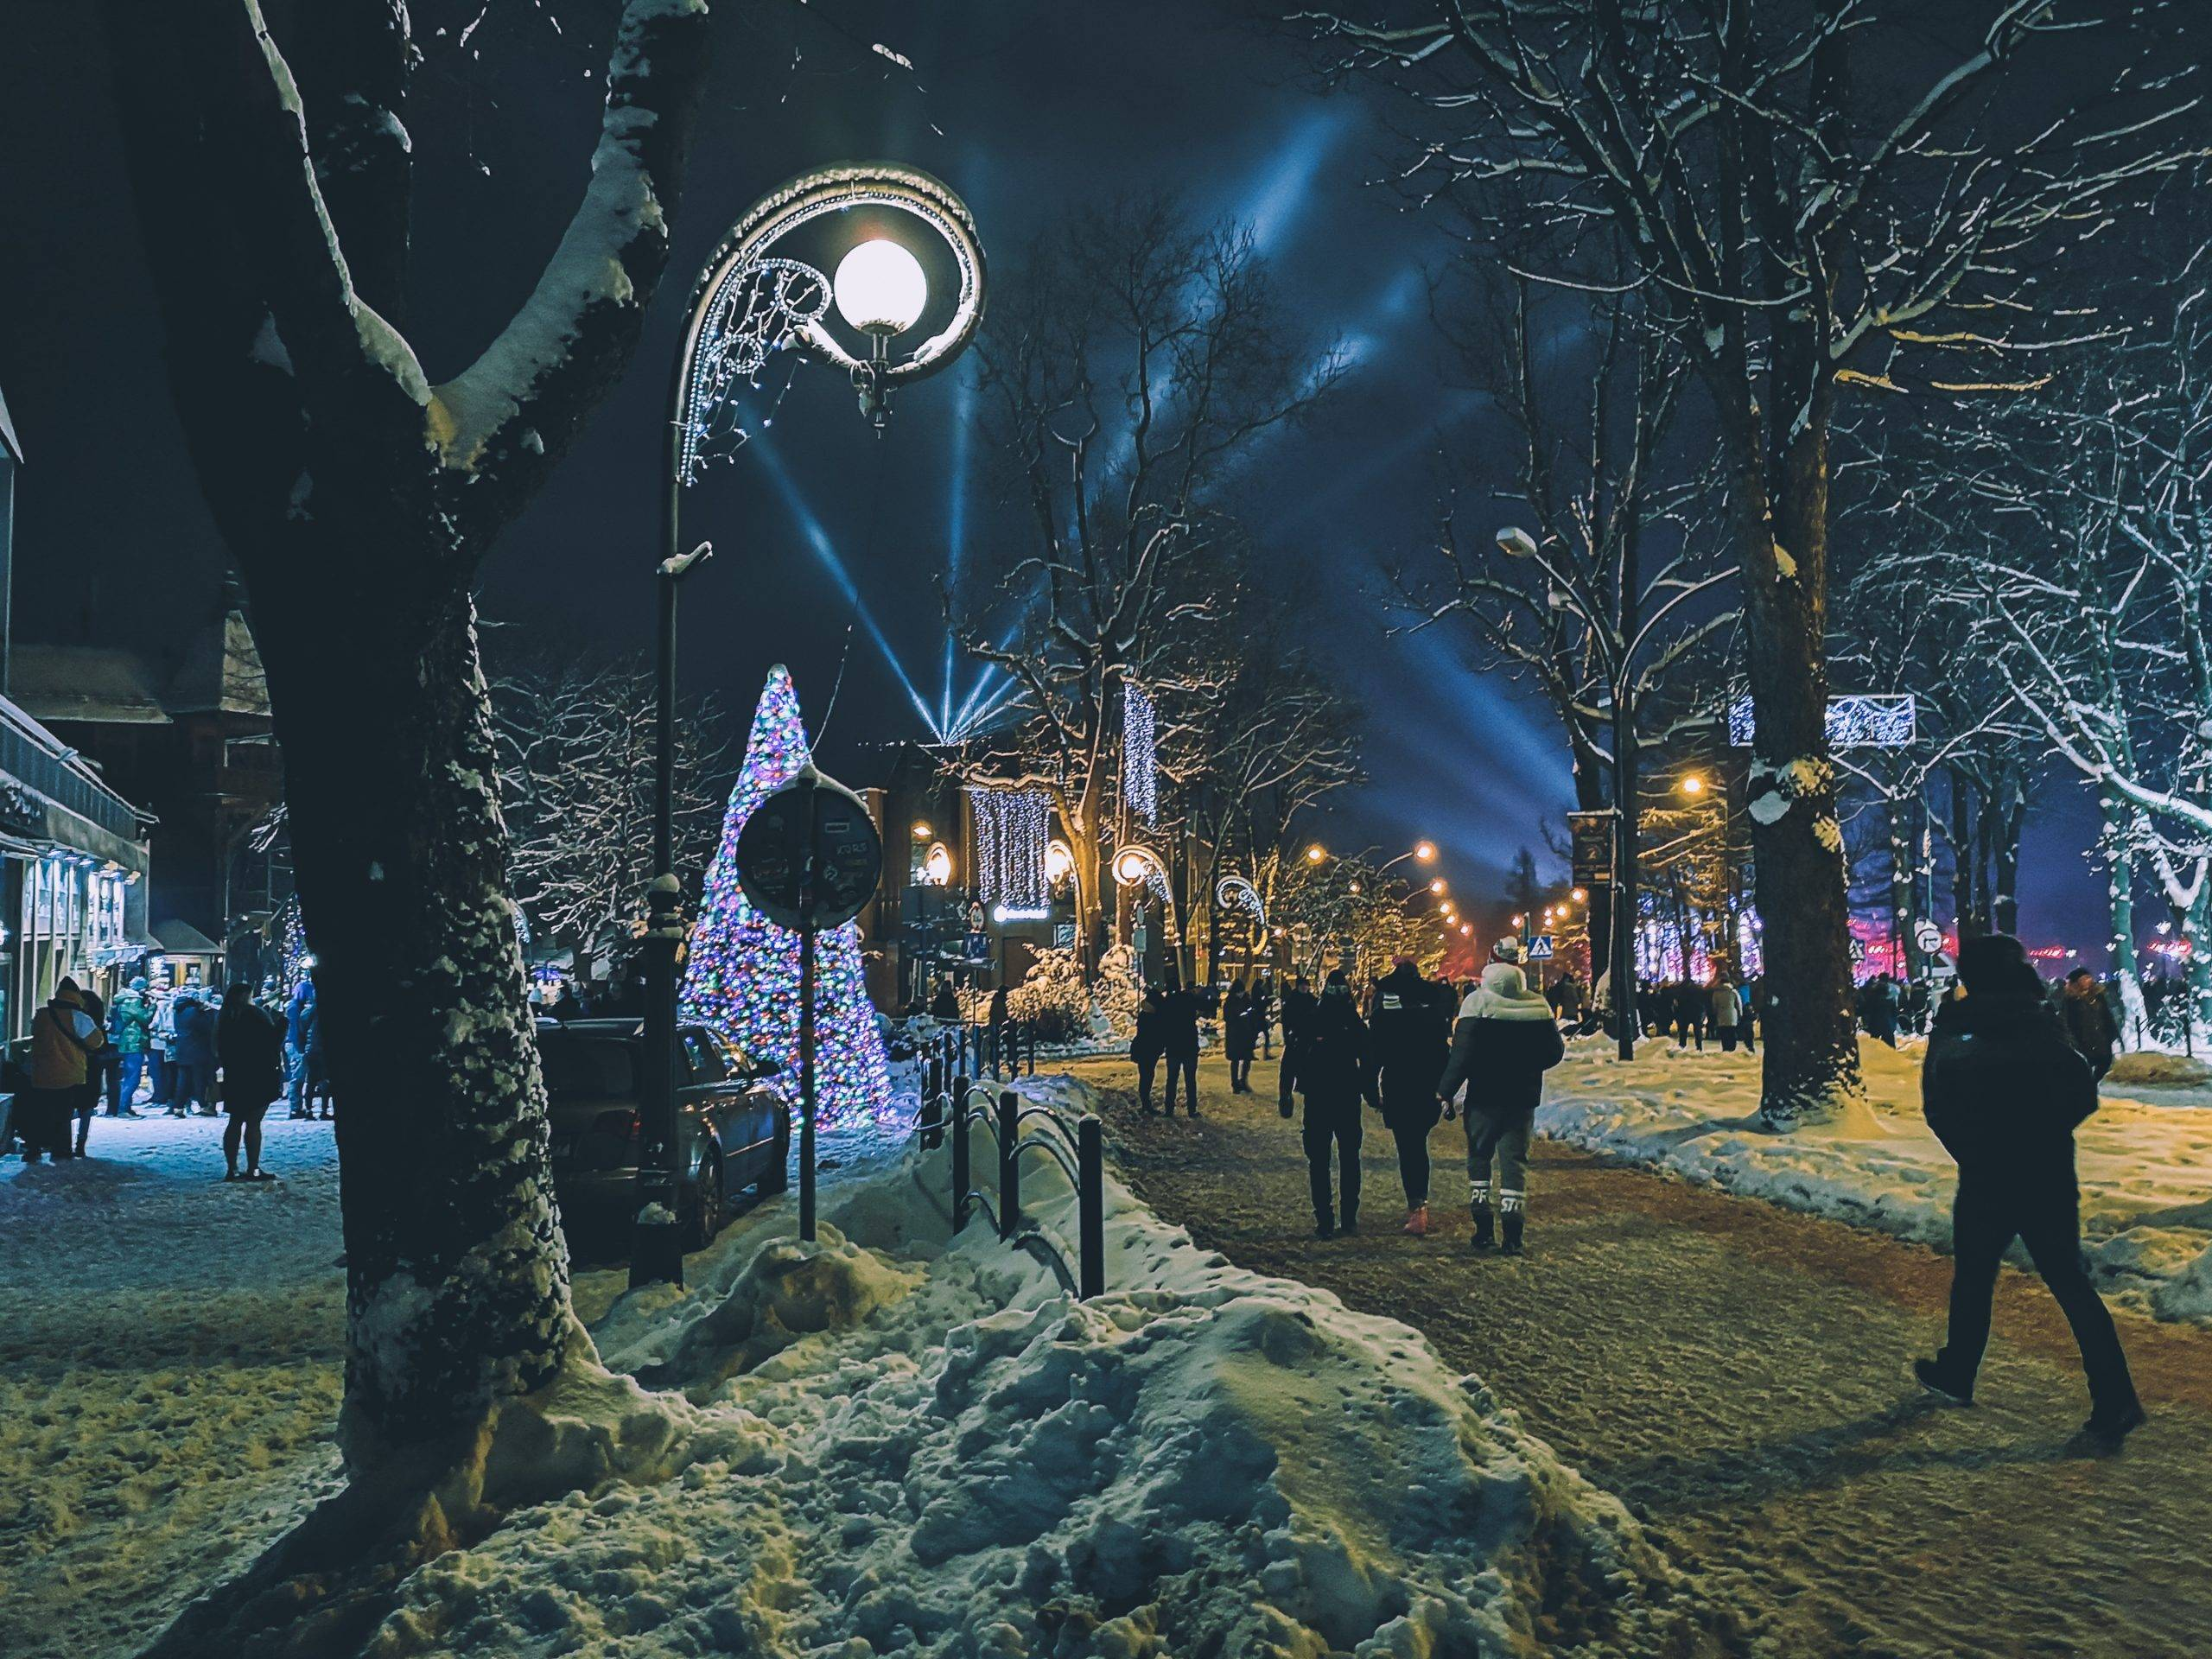 New Year's Eve in Zakopane. Photo by Alis Monte [CC BY-SA 4.0], via Connecting the Dots